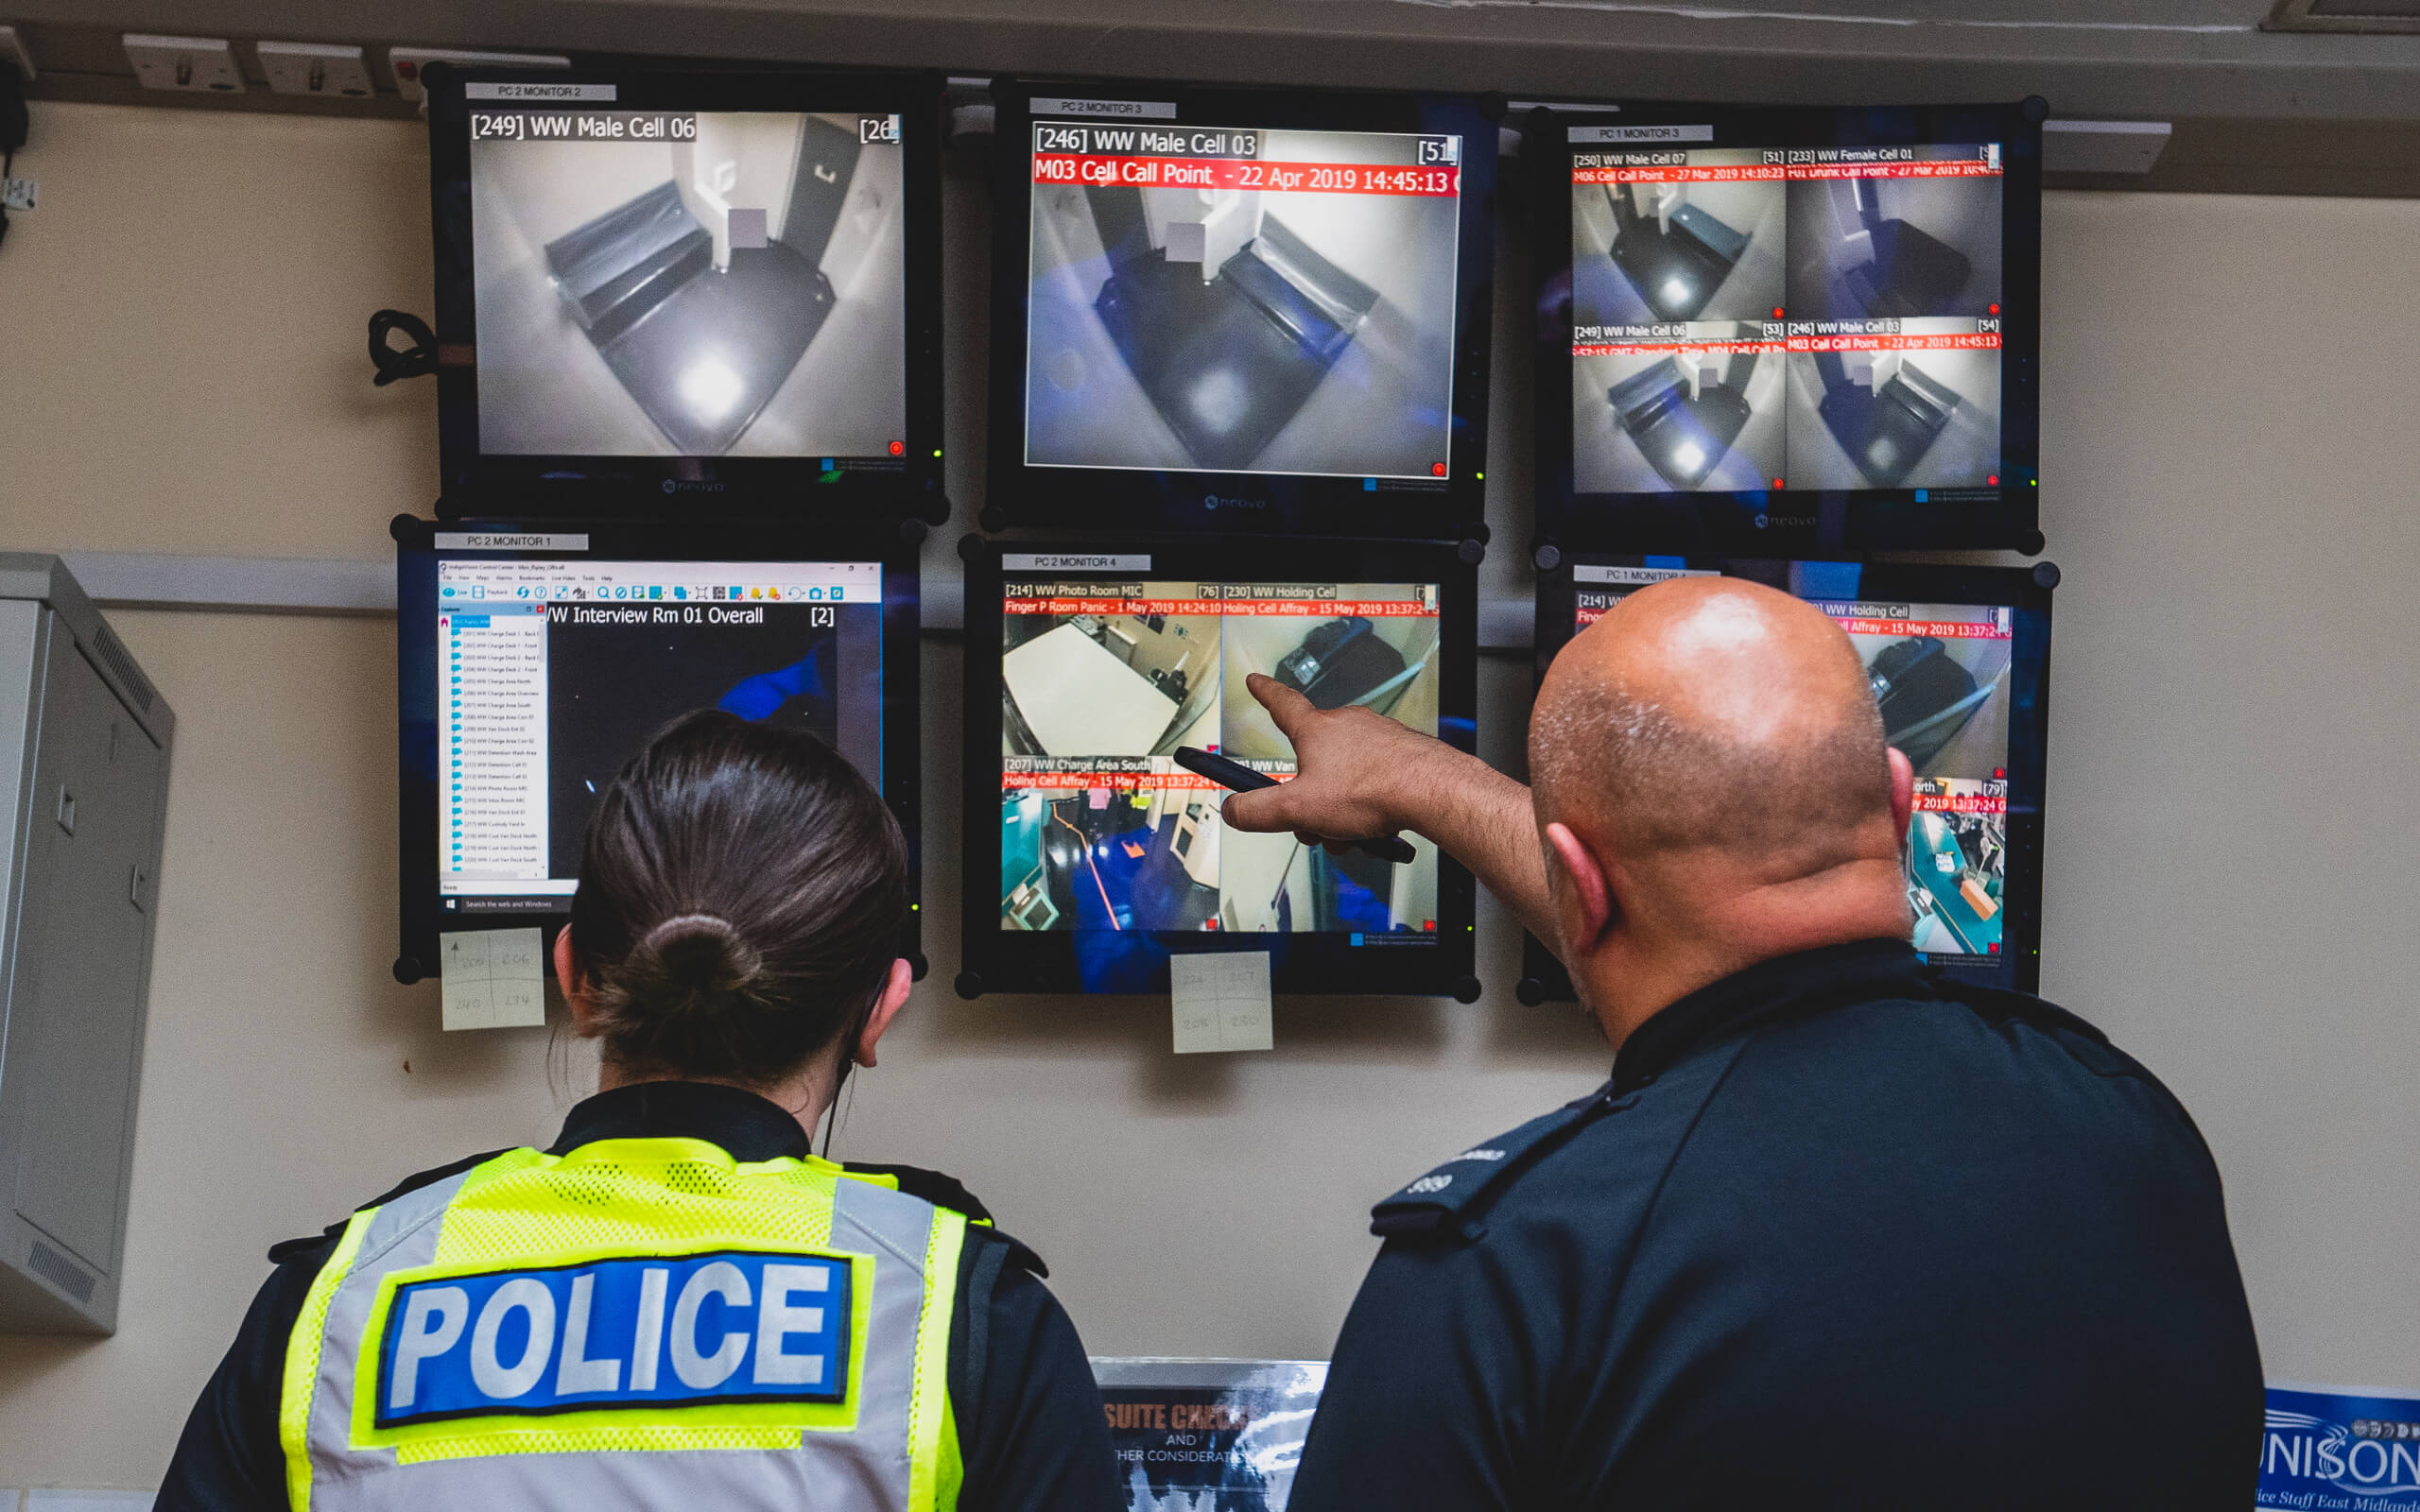 Two police officers looking at CCTV camera feeds